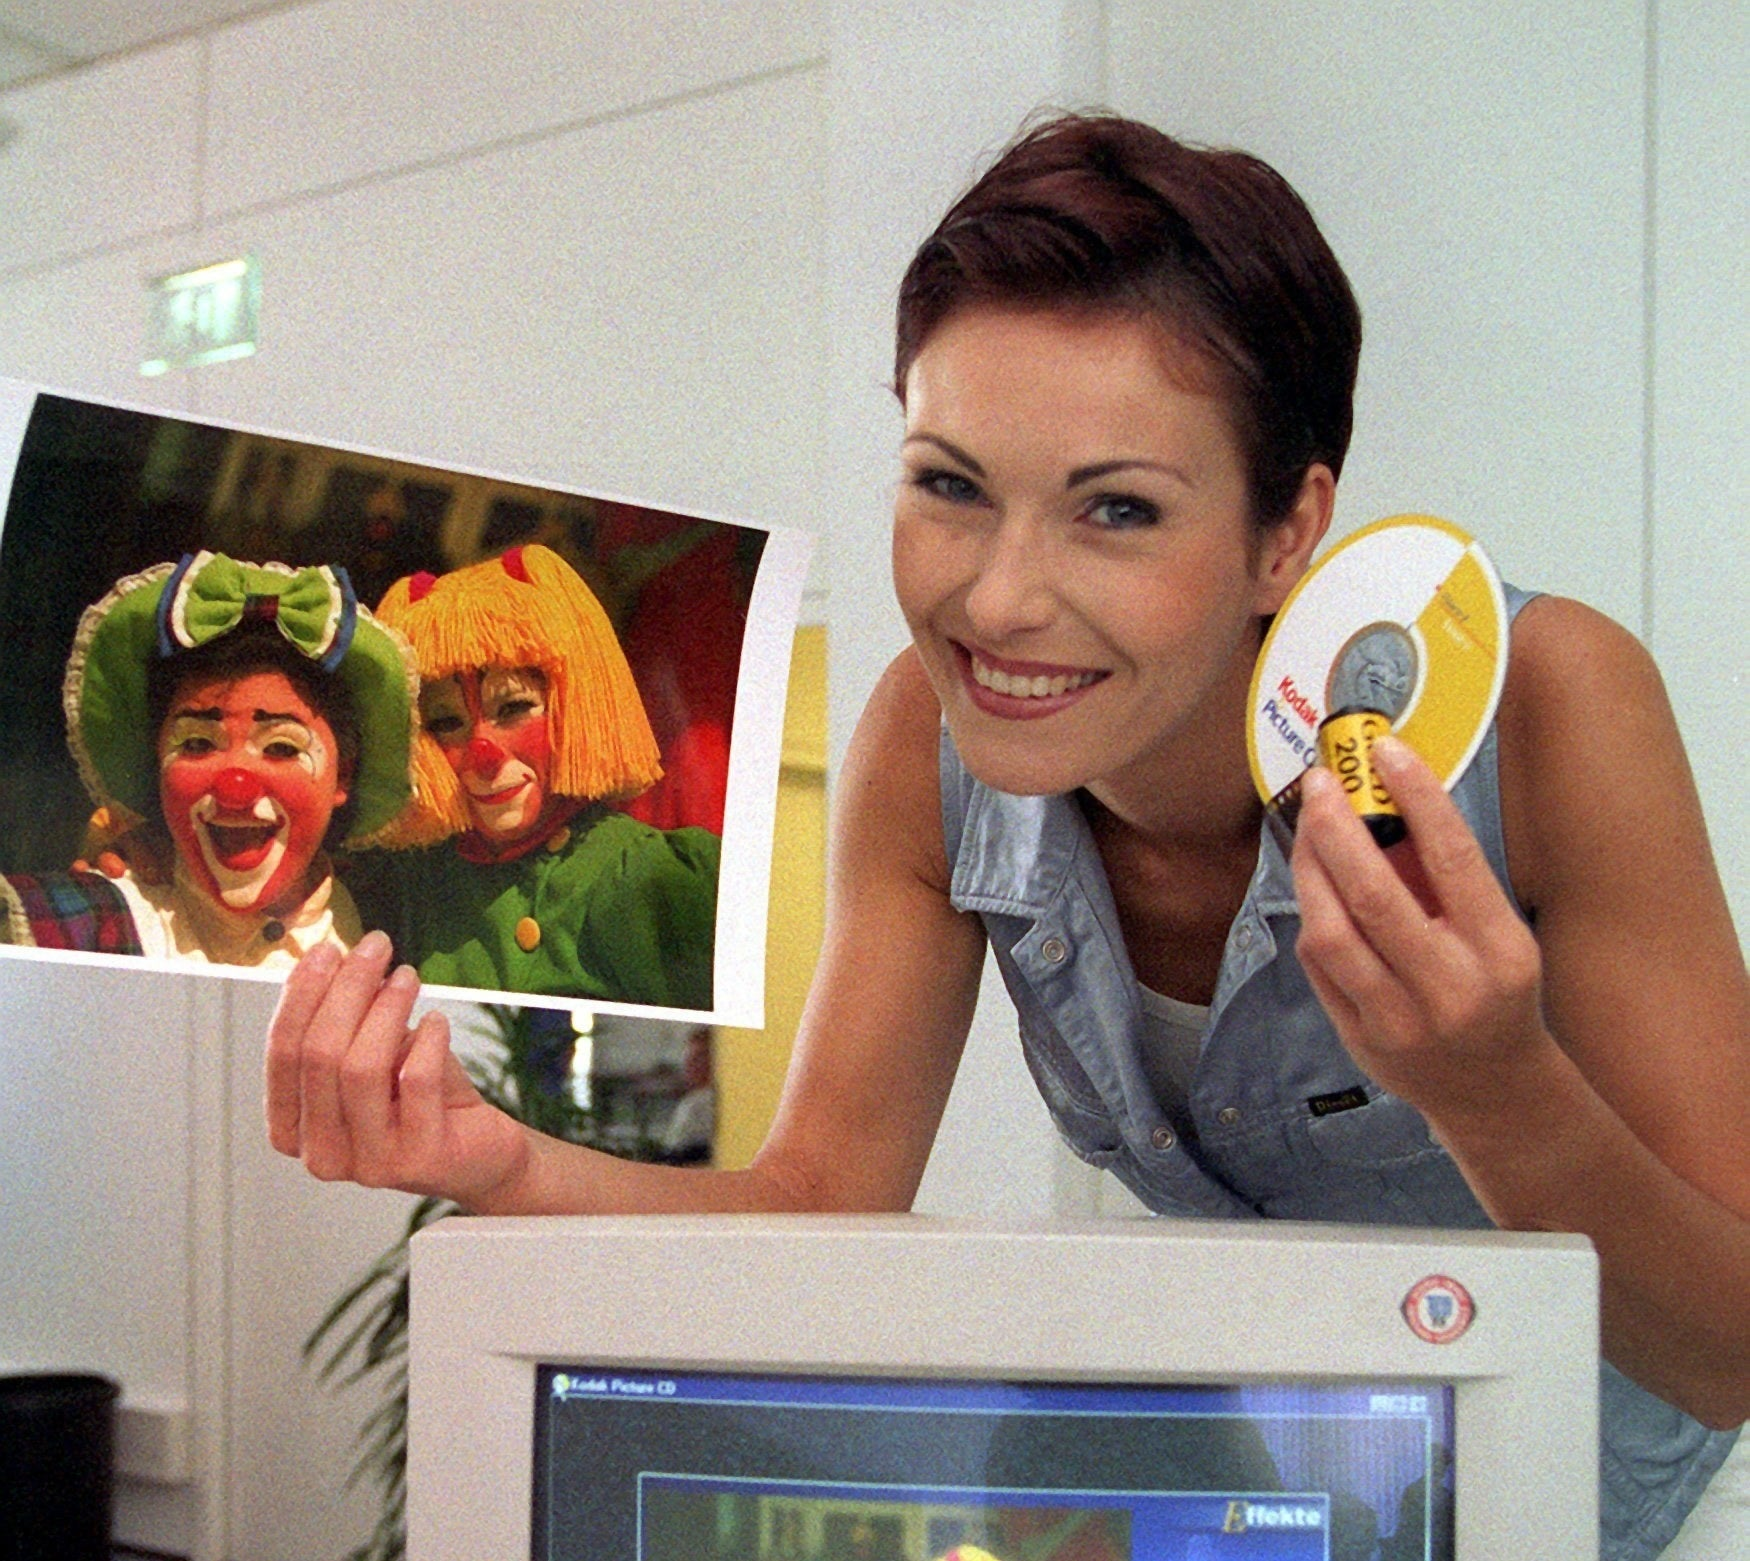 A woman holding a large photo of two female clowns in one hand and a photo CD and film in the other